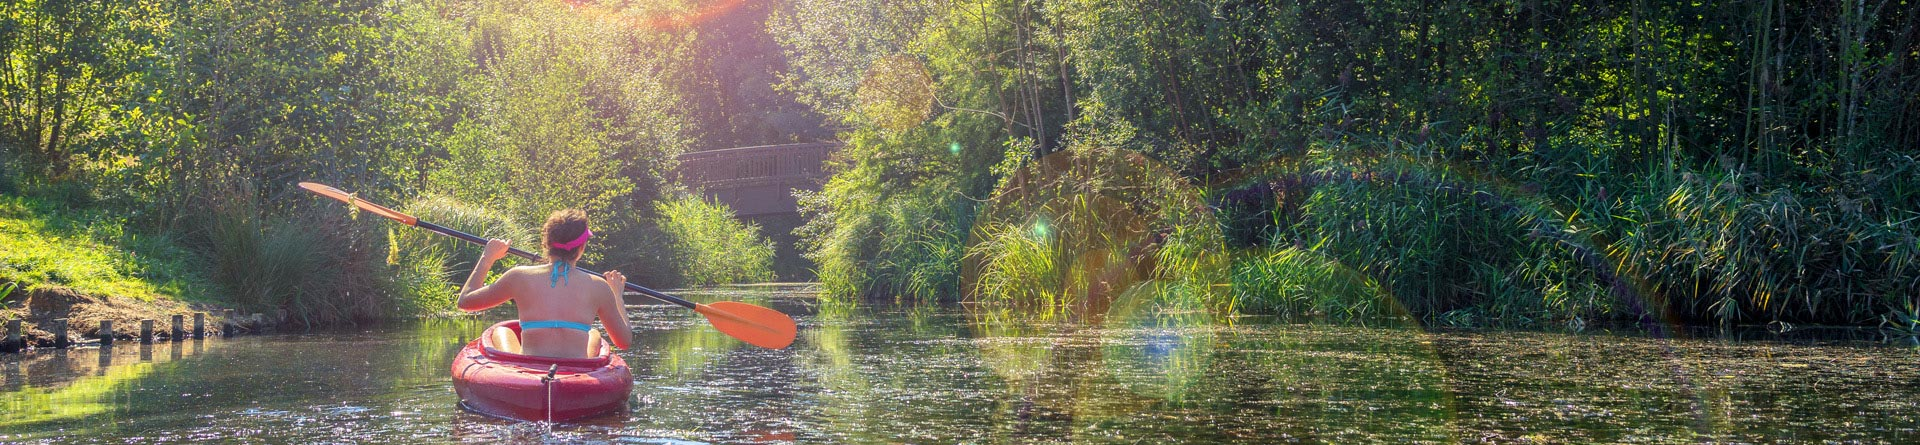 Girl kayaking on a river